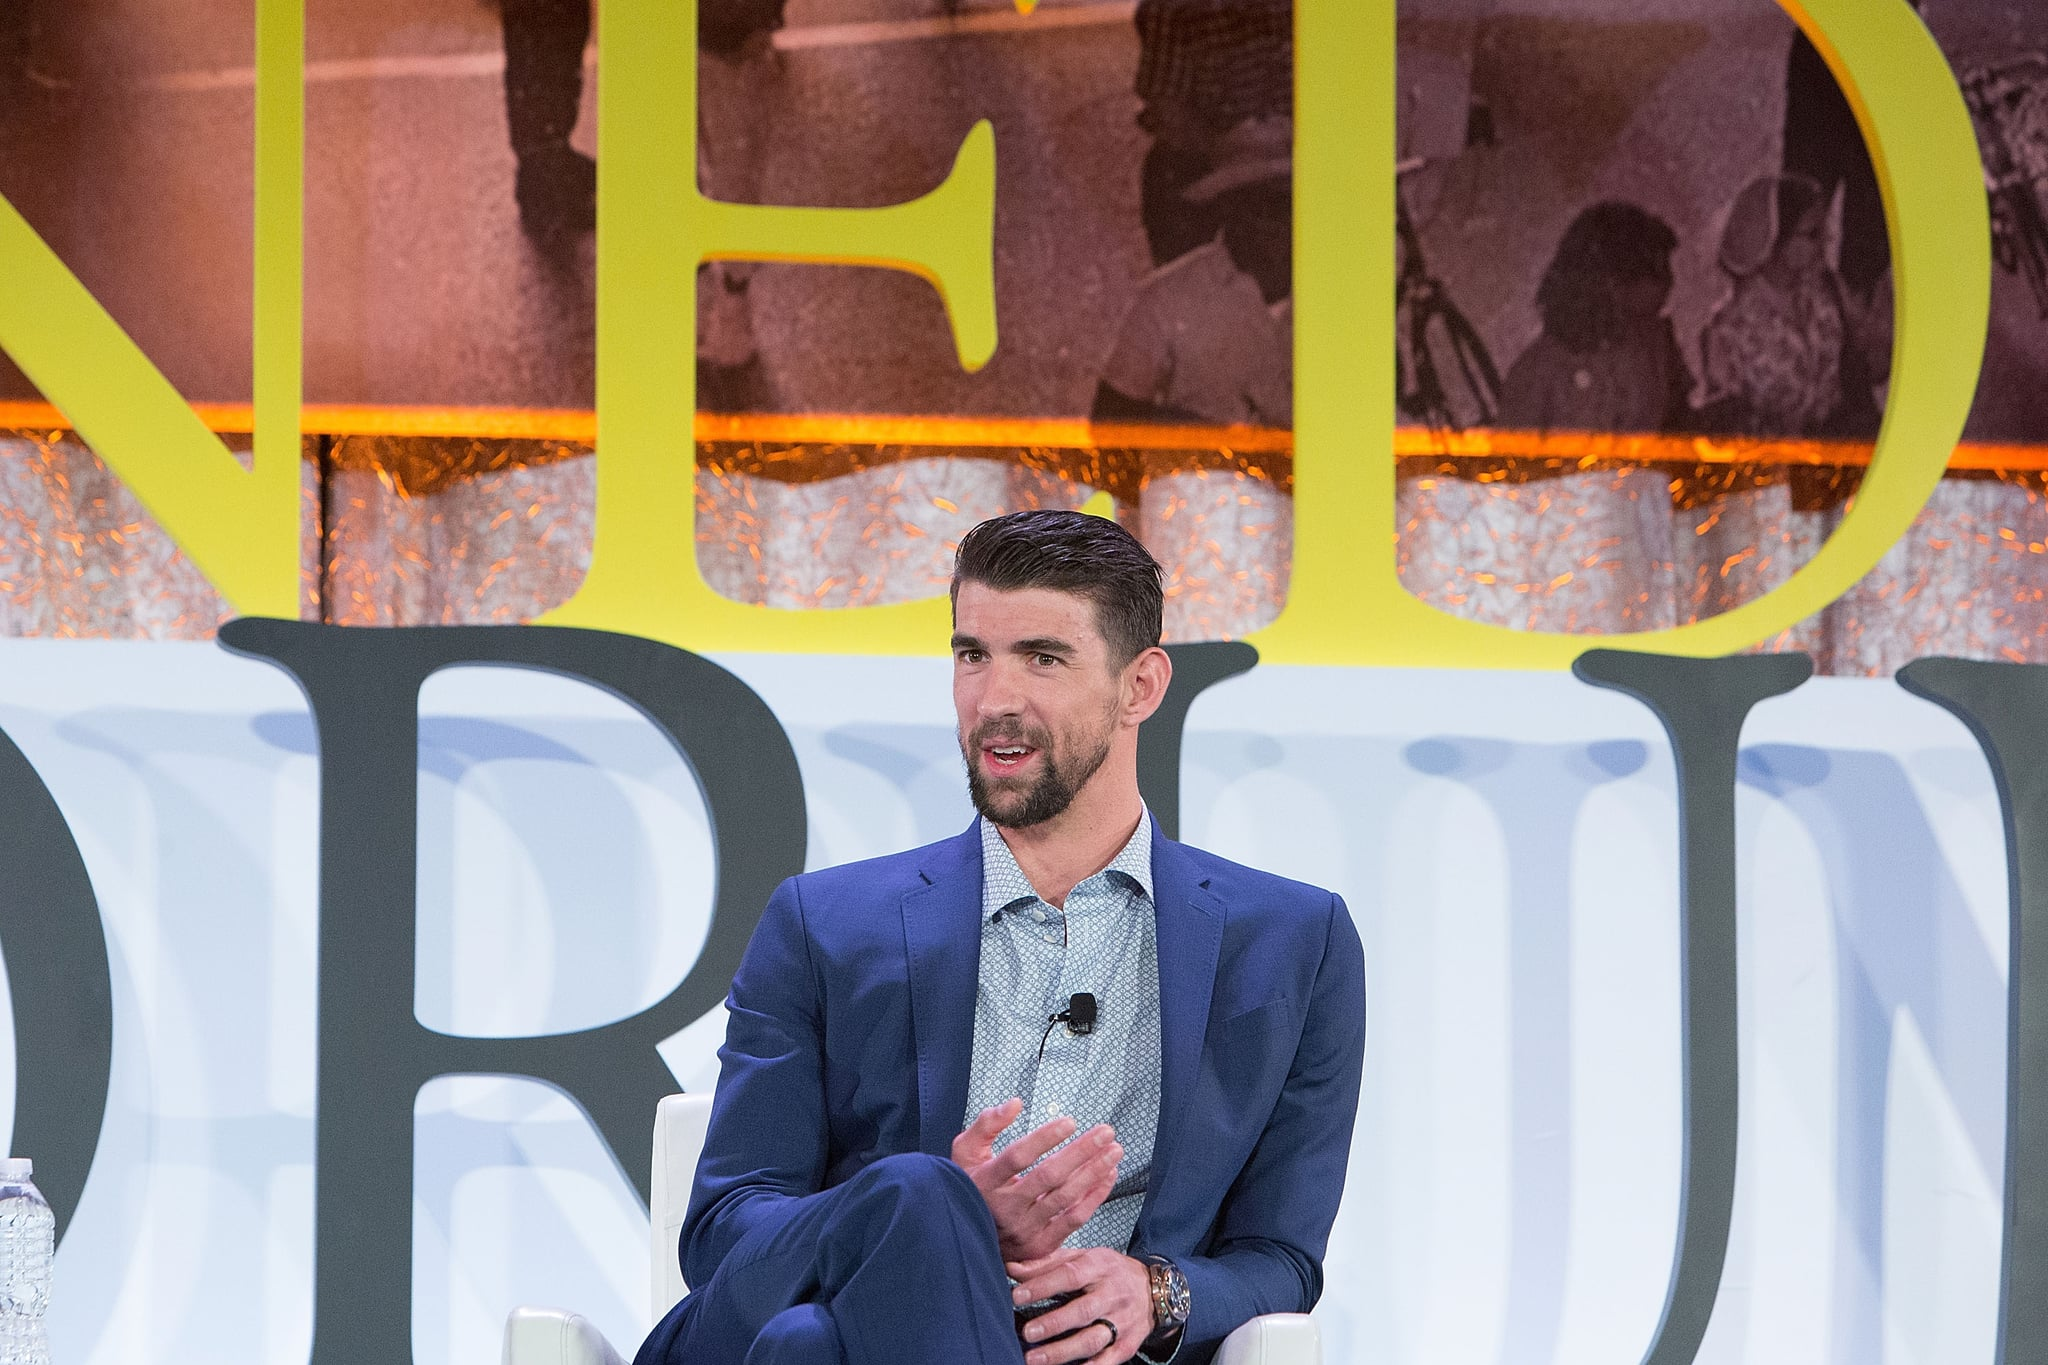 CHICAGO, IL - JANUARY 16:  28-time Olympic Medalist Swimmer Michael Phelps was among the advocates speaking at The Kennedy Forum National Summit On Mental Health Equity And Justice In Chicago at the Chicago Hilton and Tower Hotel on January 16, 2018 in Chicago, Illinois.  (Photo by Jeff Schear/Getty Images for Kennedy Forum)